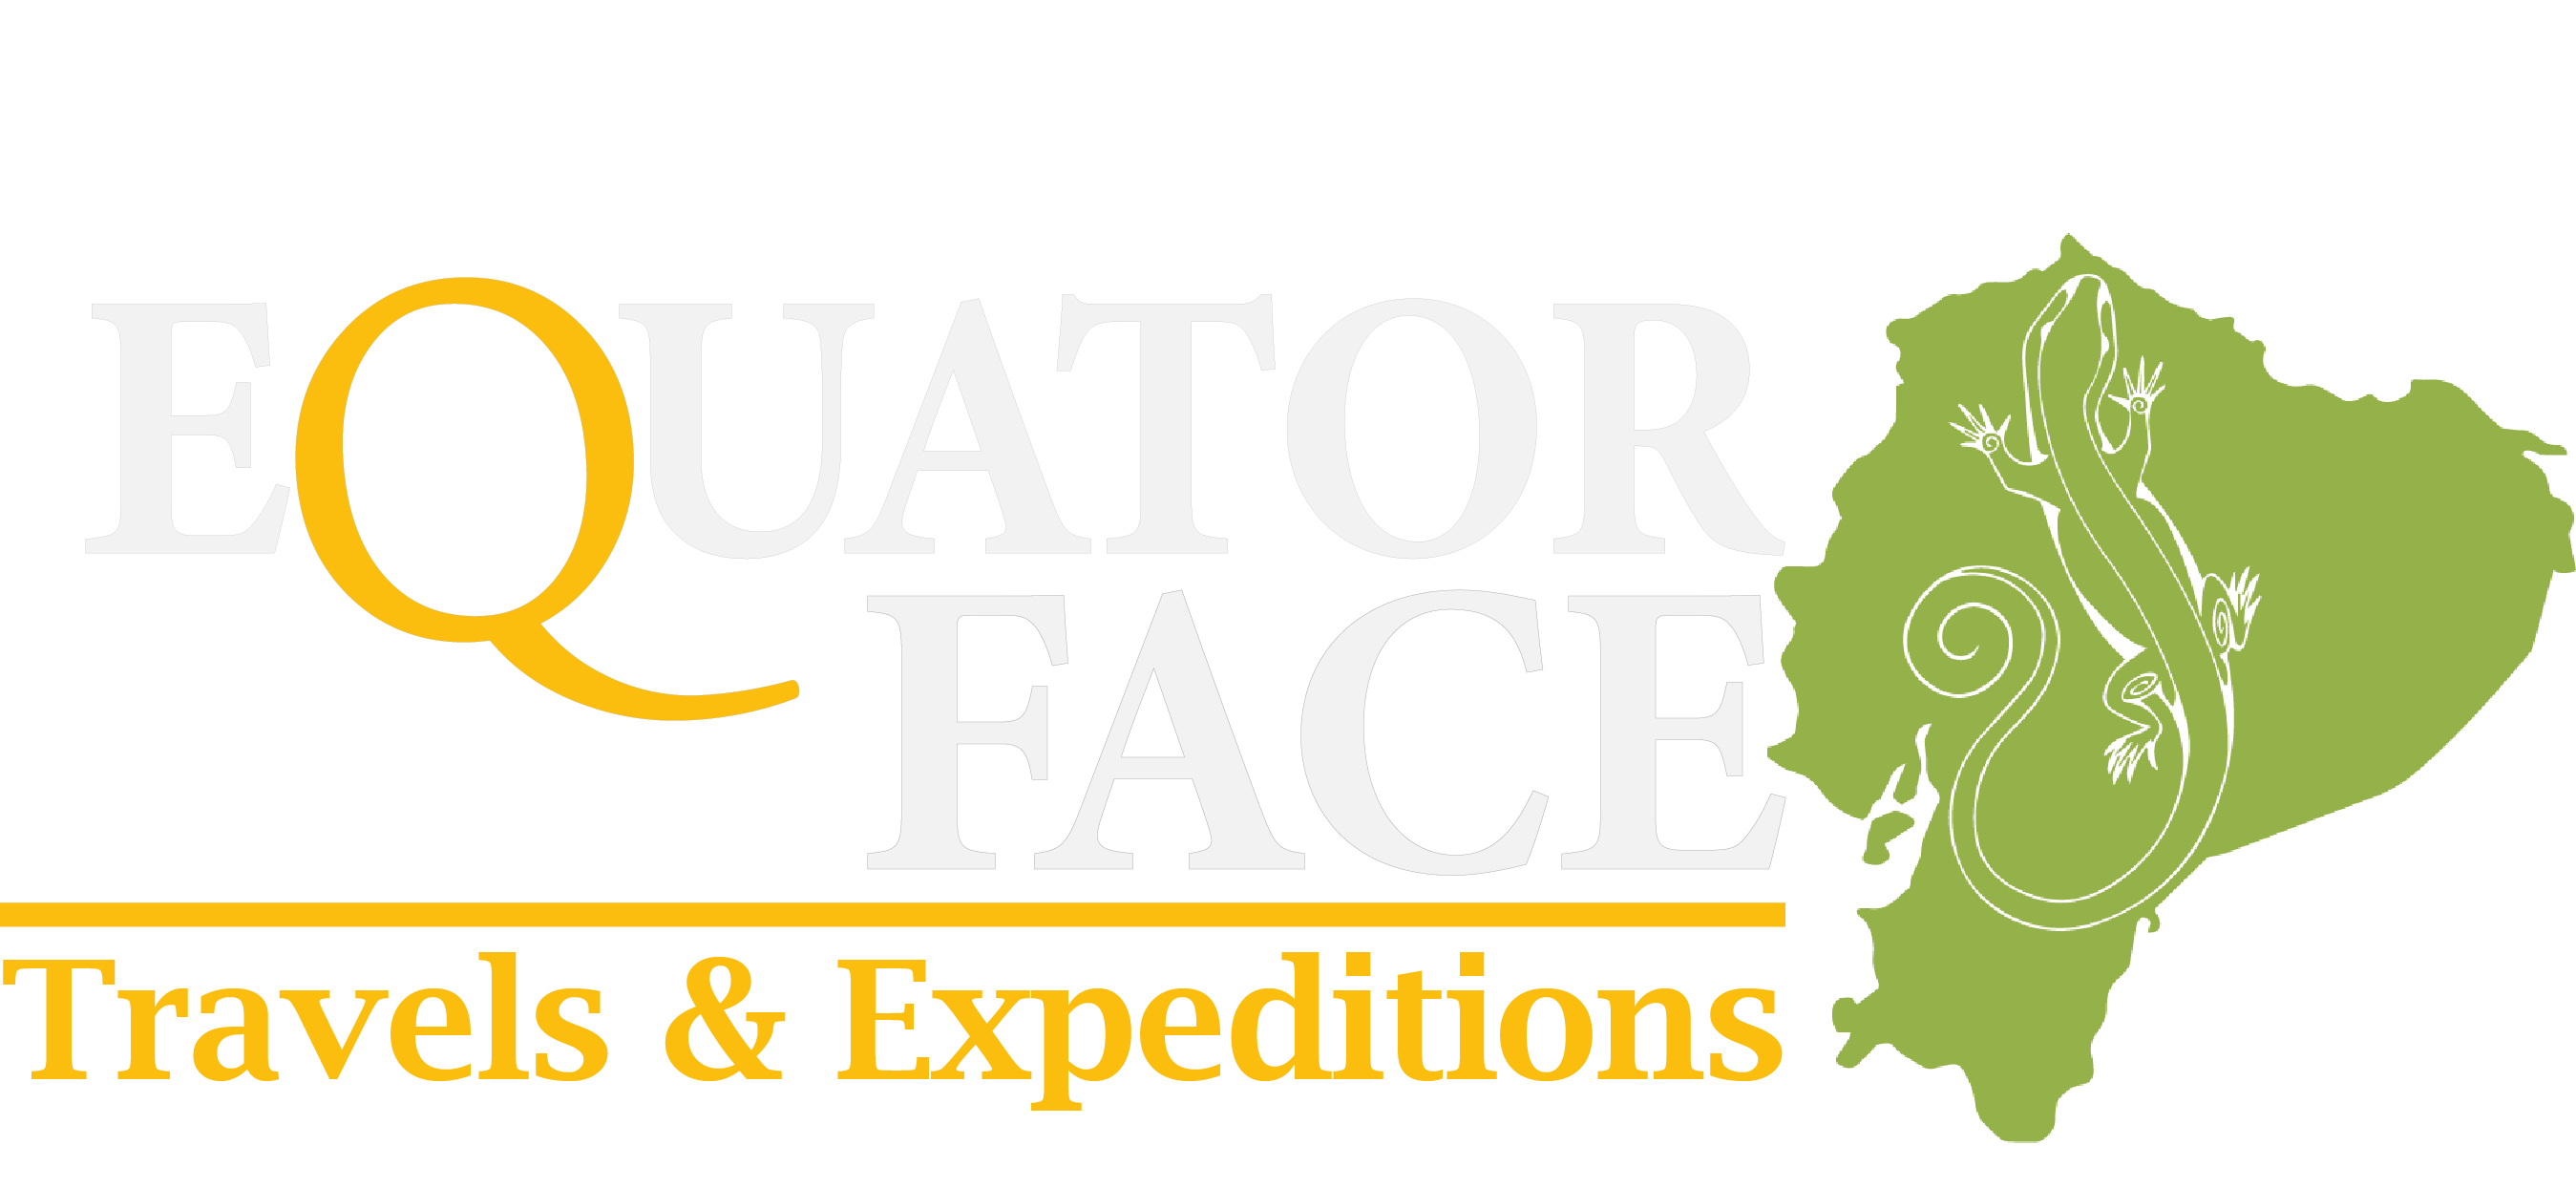 Equator Face Travels Expeditions - Guided Trips Ecuador & Galápagos – Tailor Made Journey